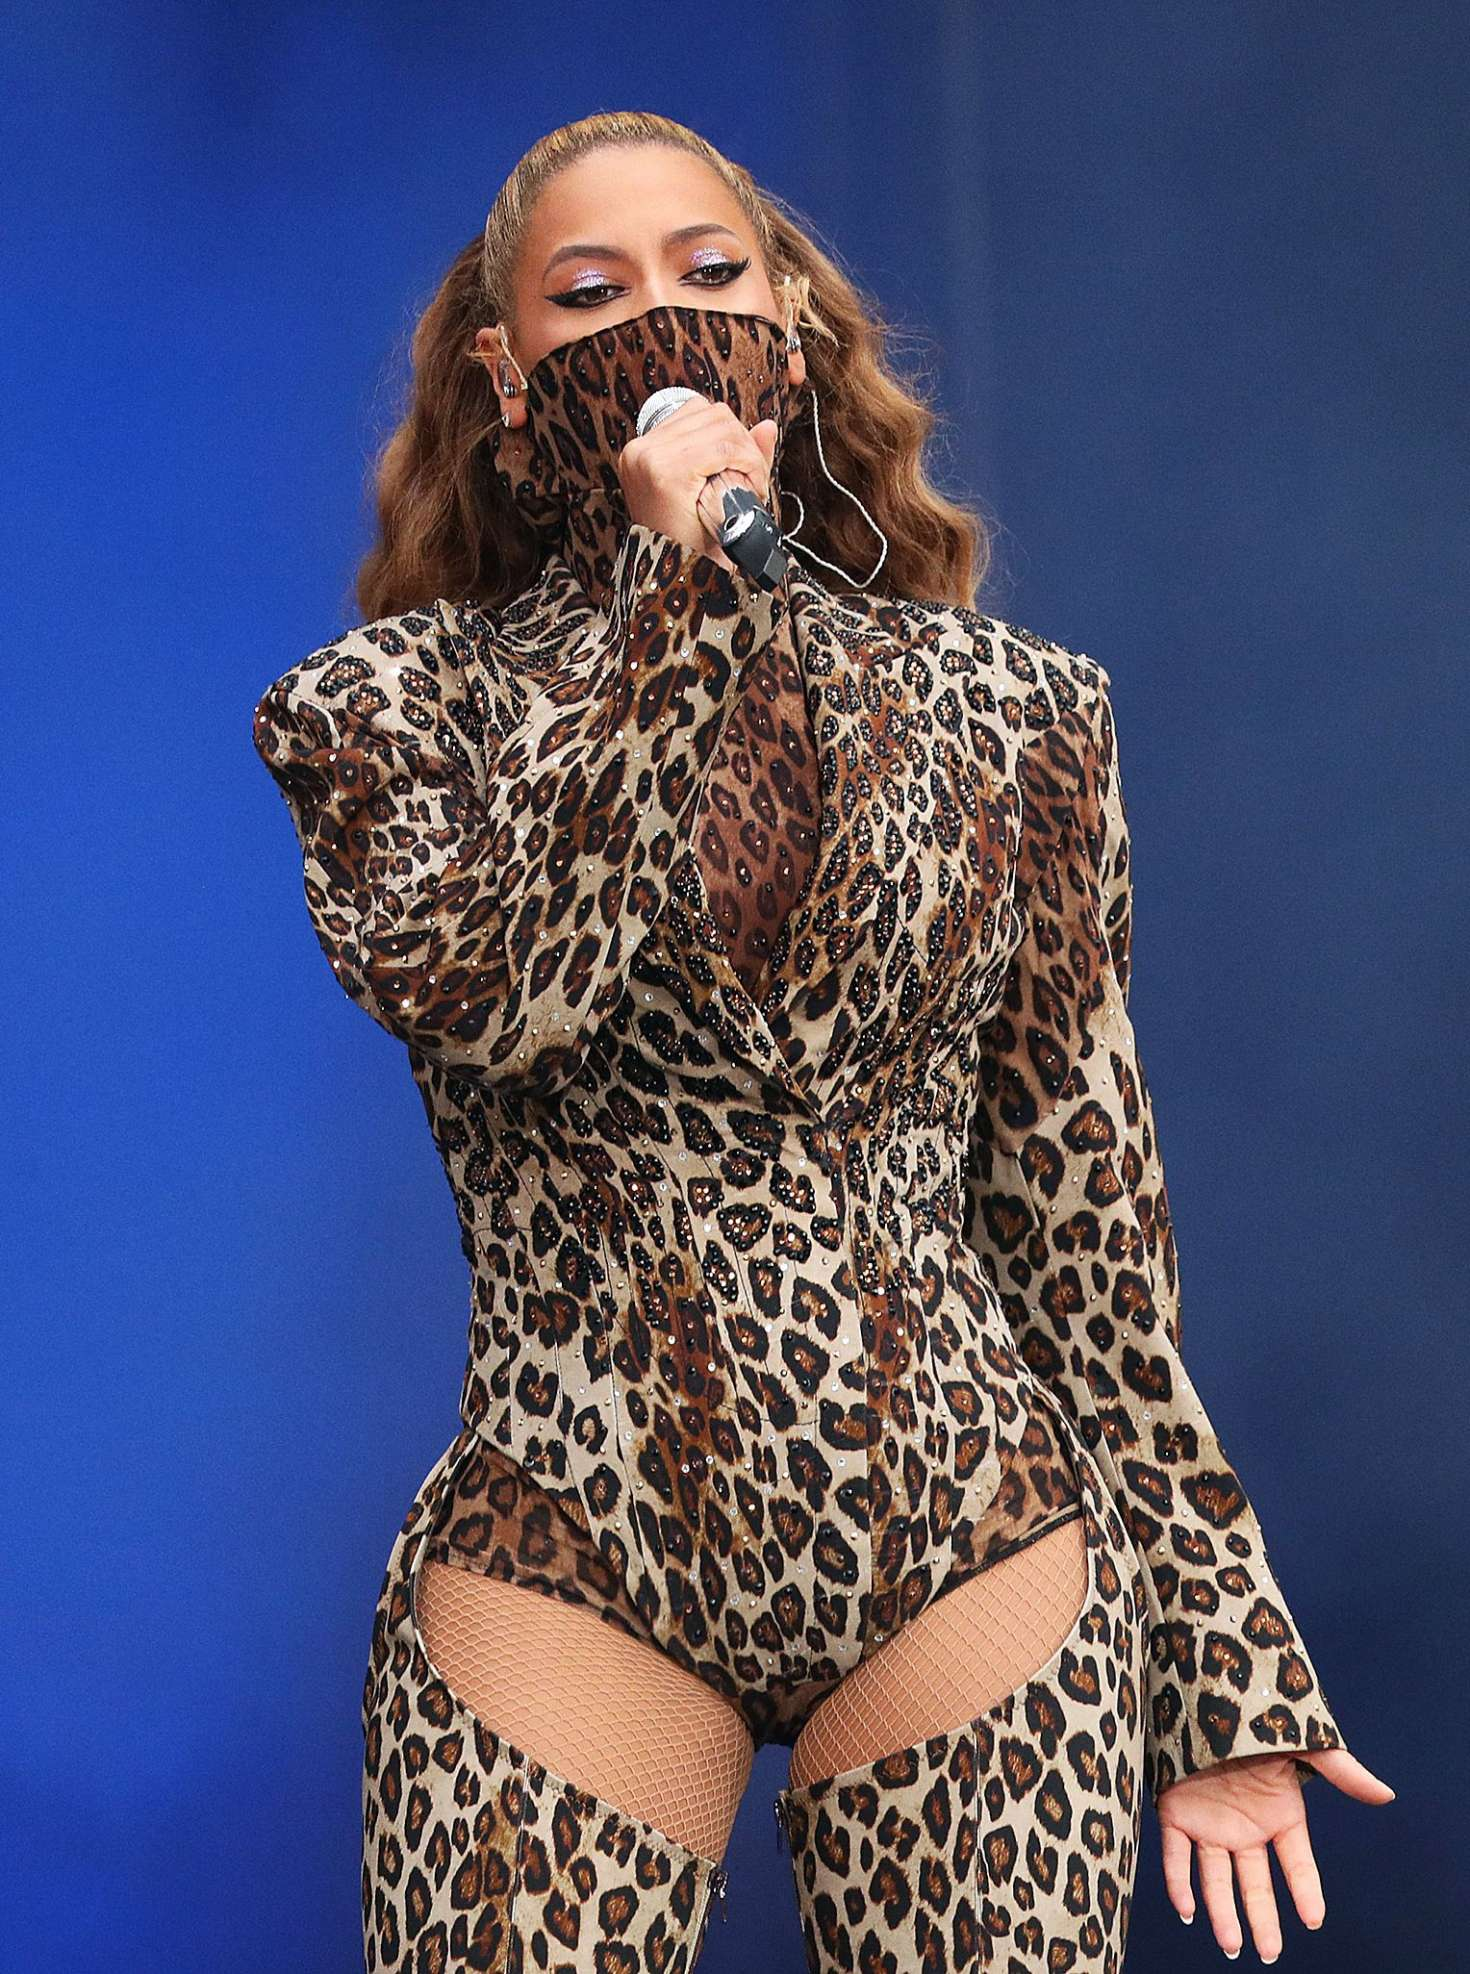 Beyonce and Jay-Z - Performs on The Run II Tour in London